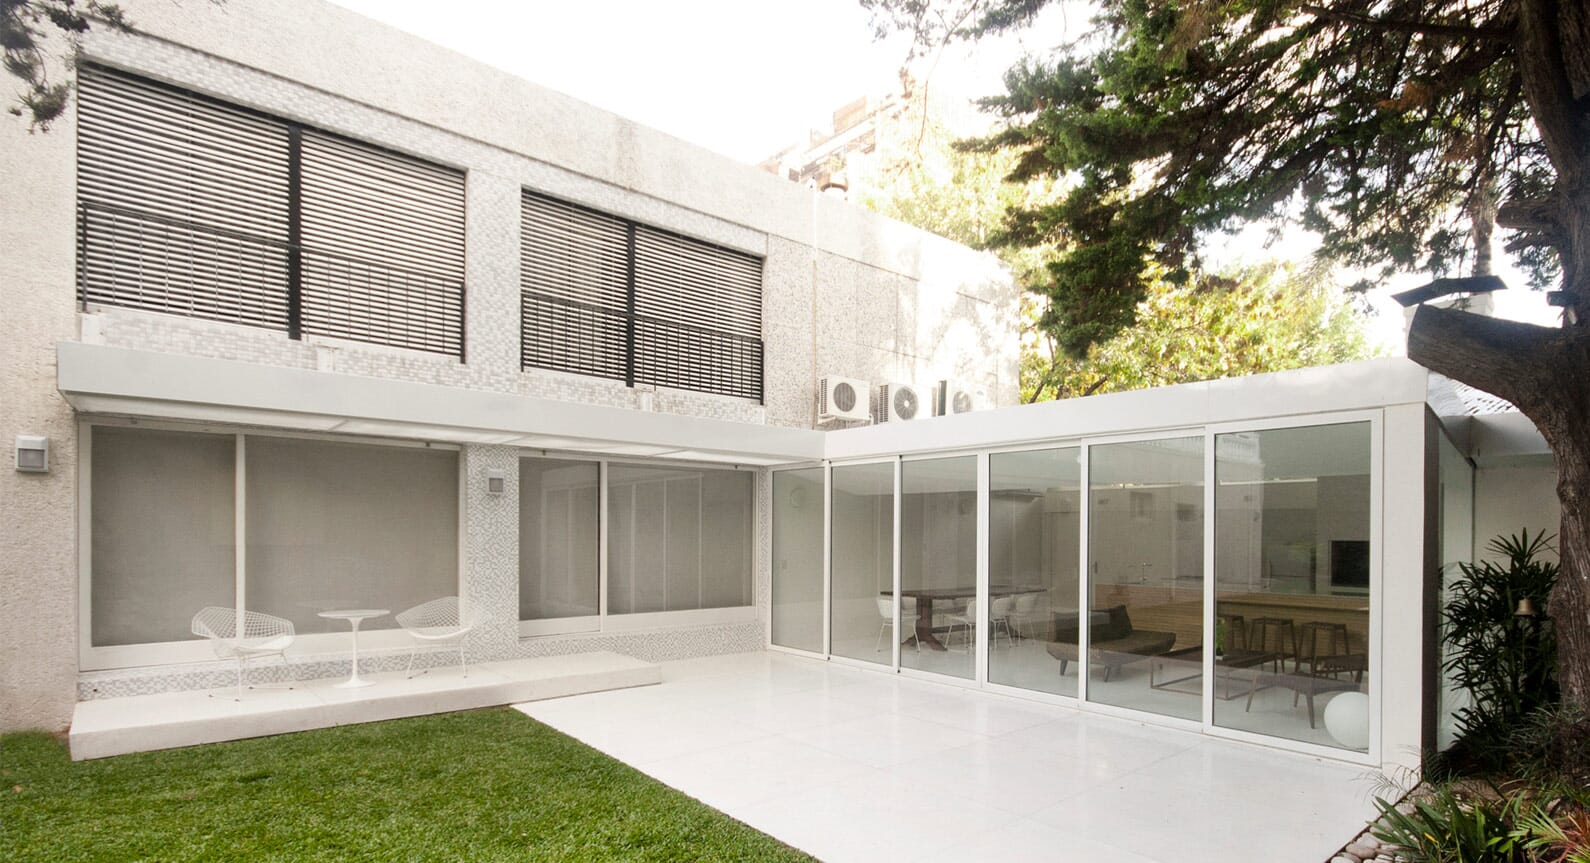 Effortless Serenity: Take A Look Inside This Pristine White Garden Extension